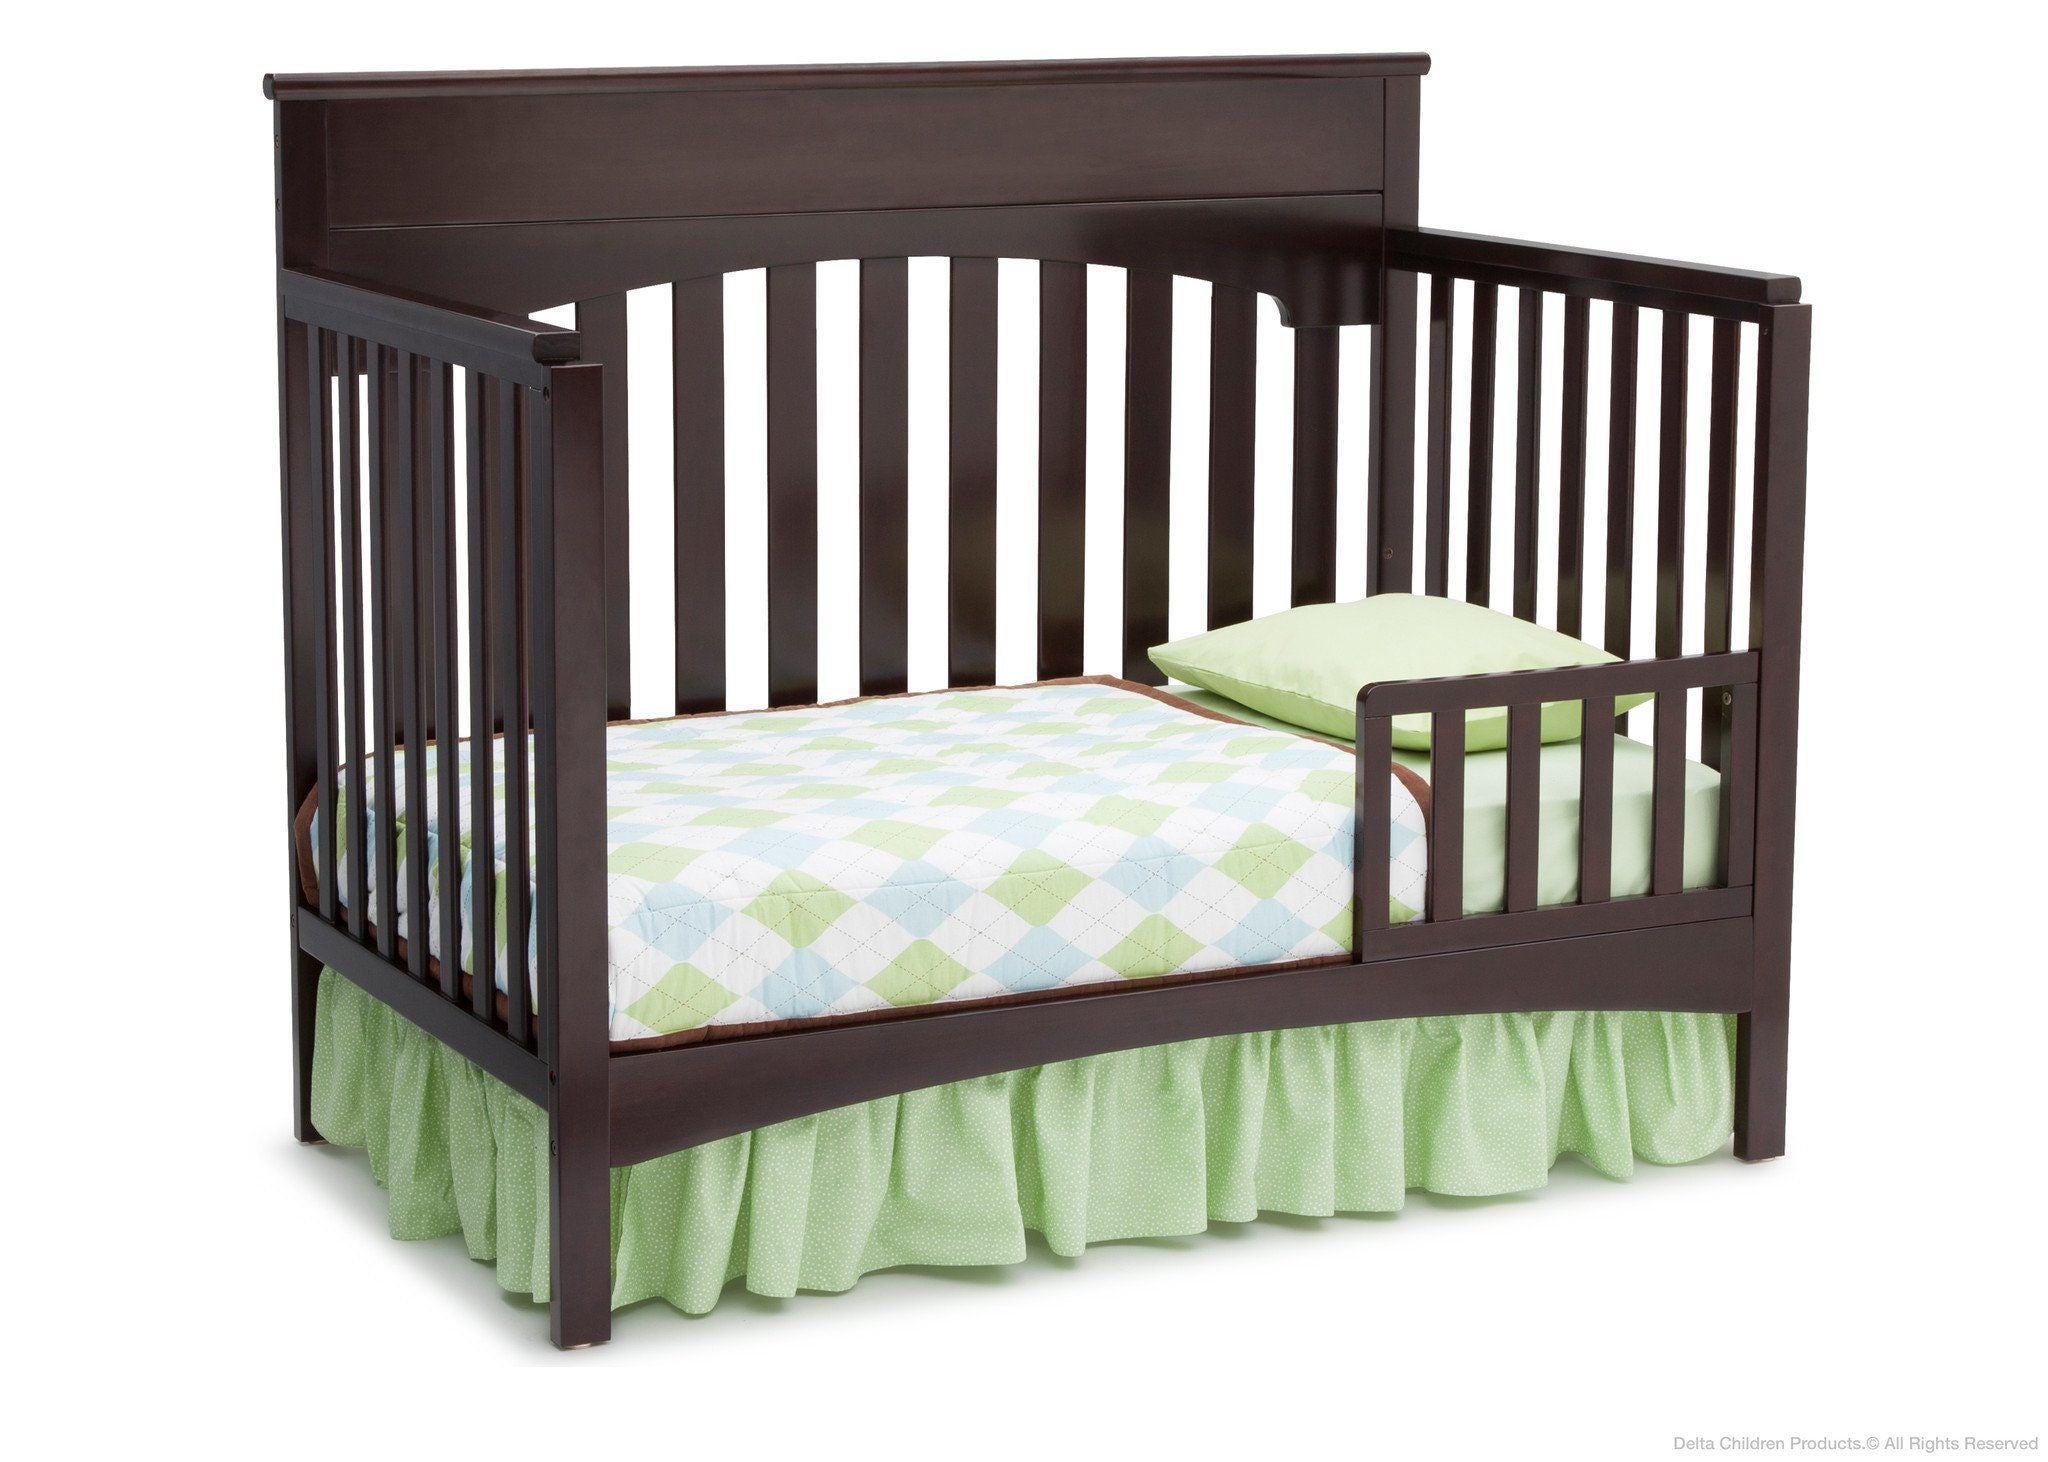 Delta Children Dark Chocolate (207) Bennington Lifestyle 4-in-1 Crib, Toddler Bed Conversion b3b